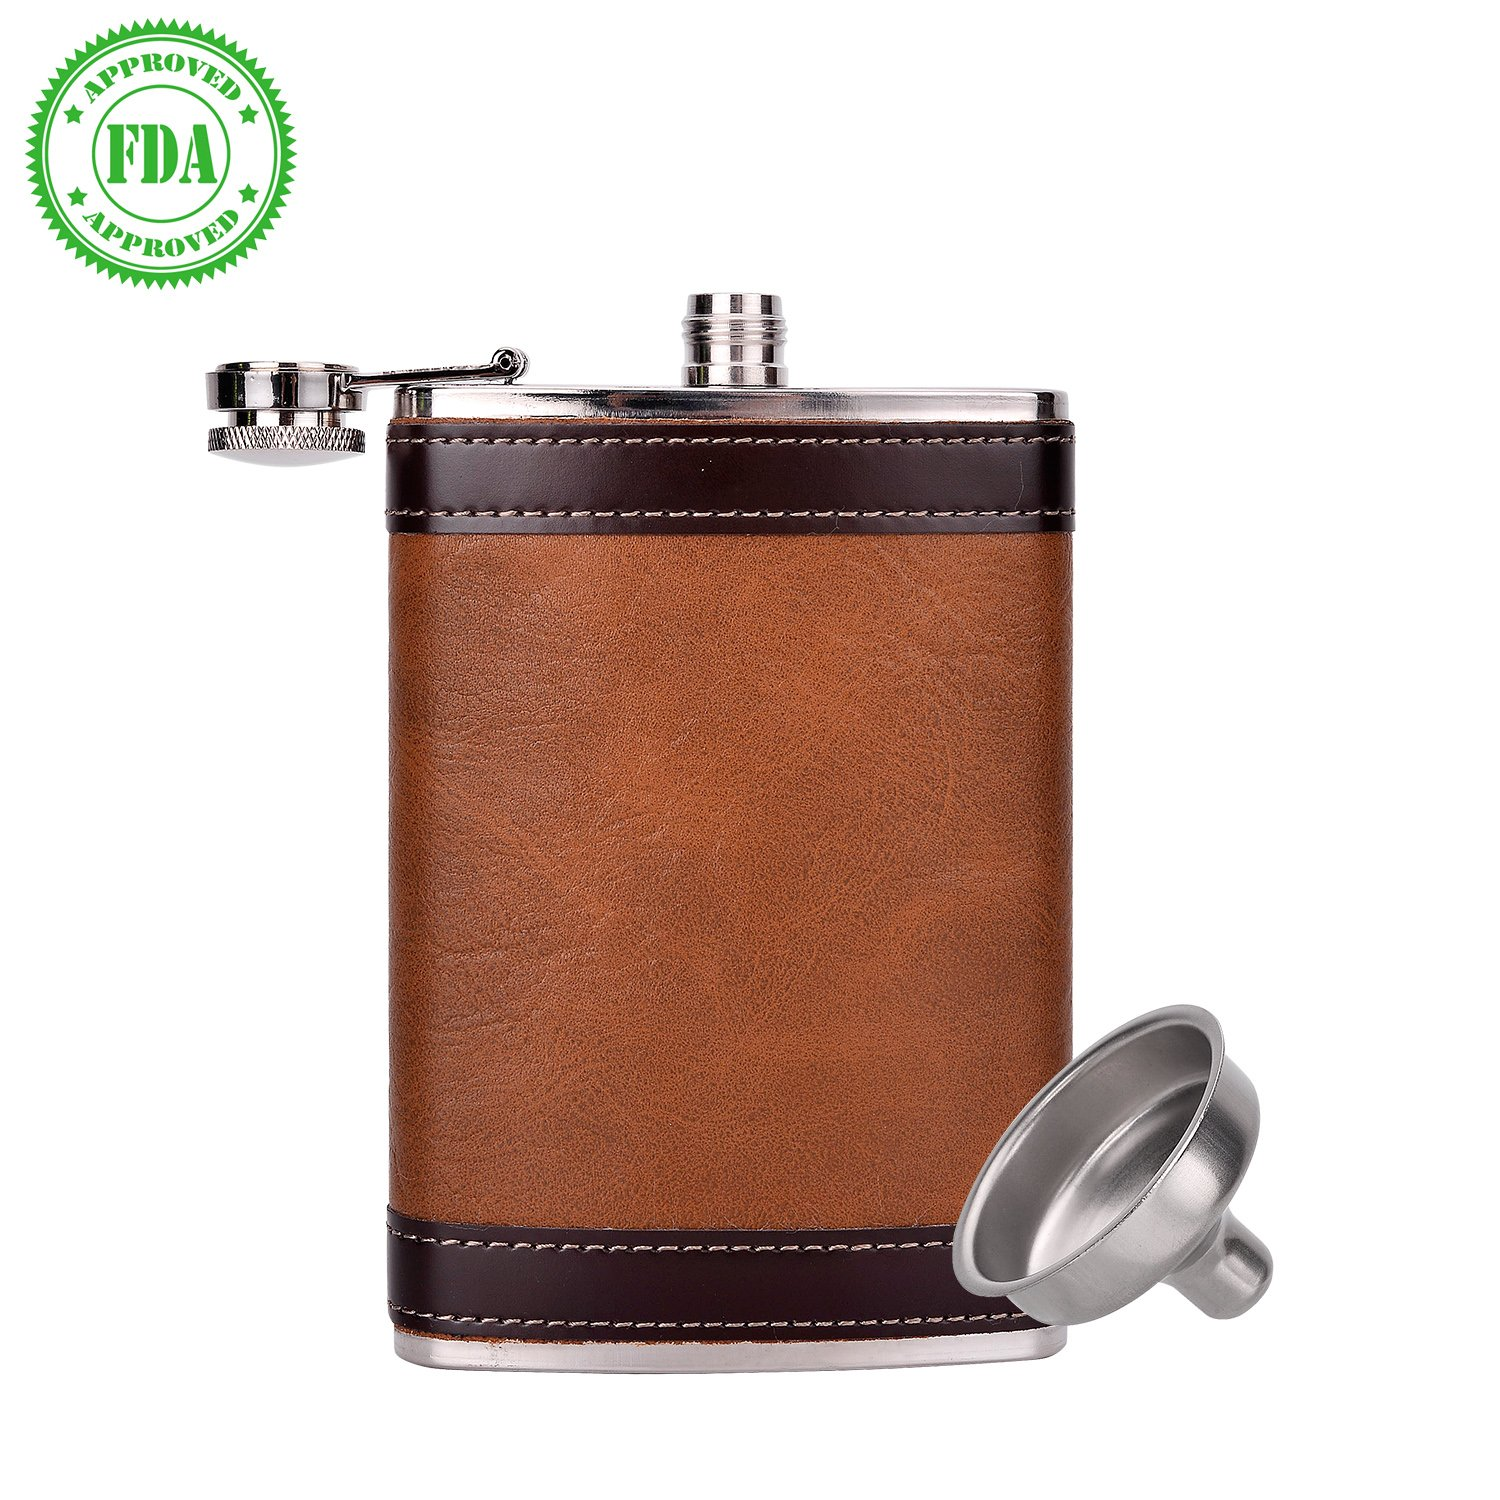 Stainless Steel Hip Flask Pocket Bottle for Liquor Wine Alcohol|with Leather Case|Portable Flagon with Funnel|Liquor Container |18ounce 2 Cups Included|dark brown (brown-s)